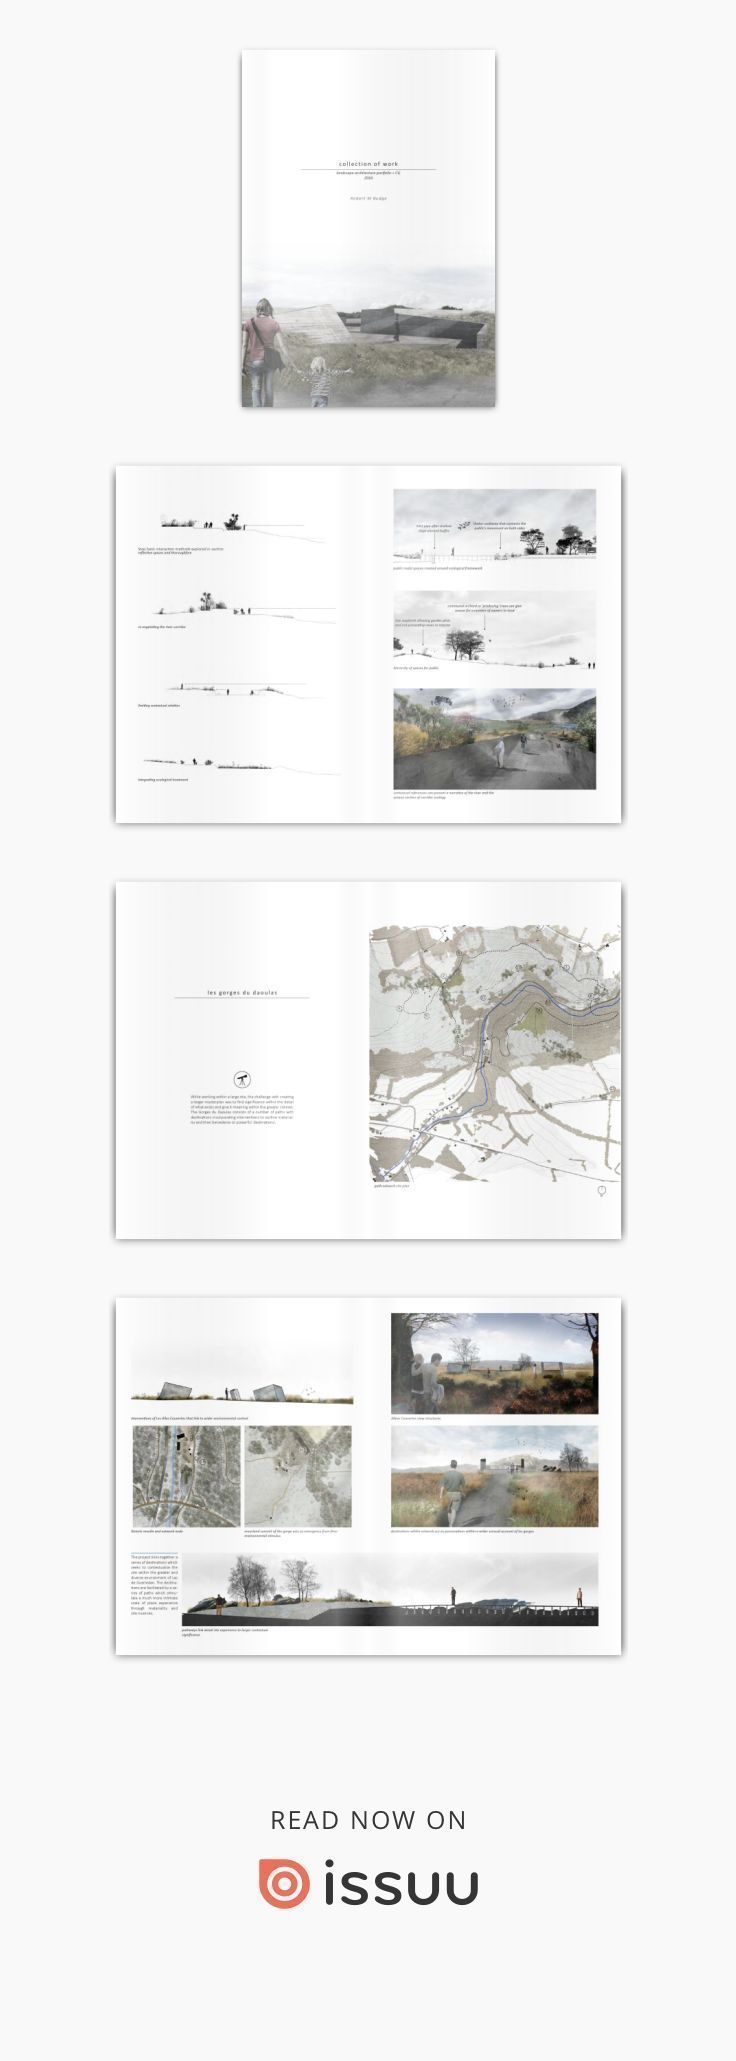 landscape architecture cover letter%0A Robert Budge  Landscape Architecture Portfolio The collective works from  my five years of study including